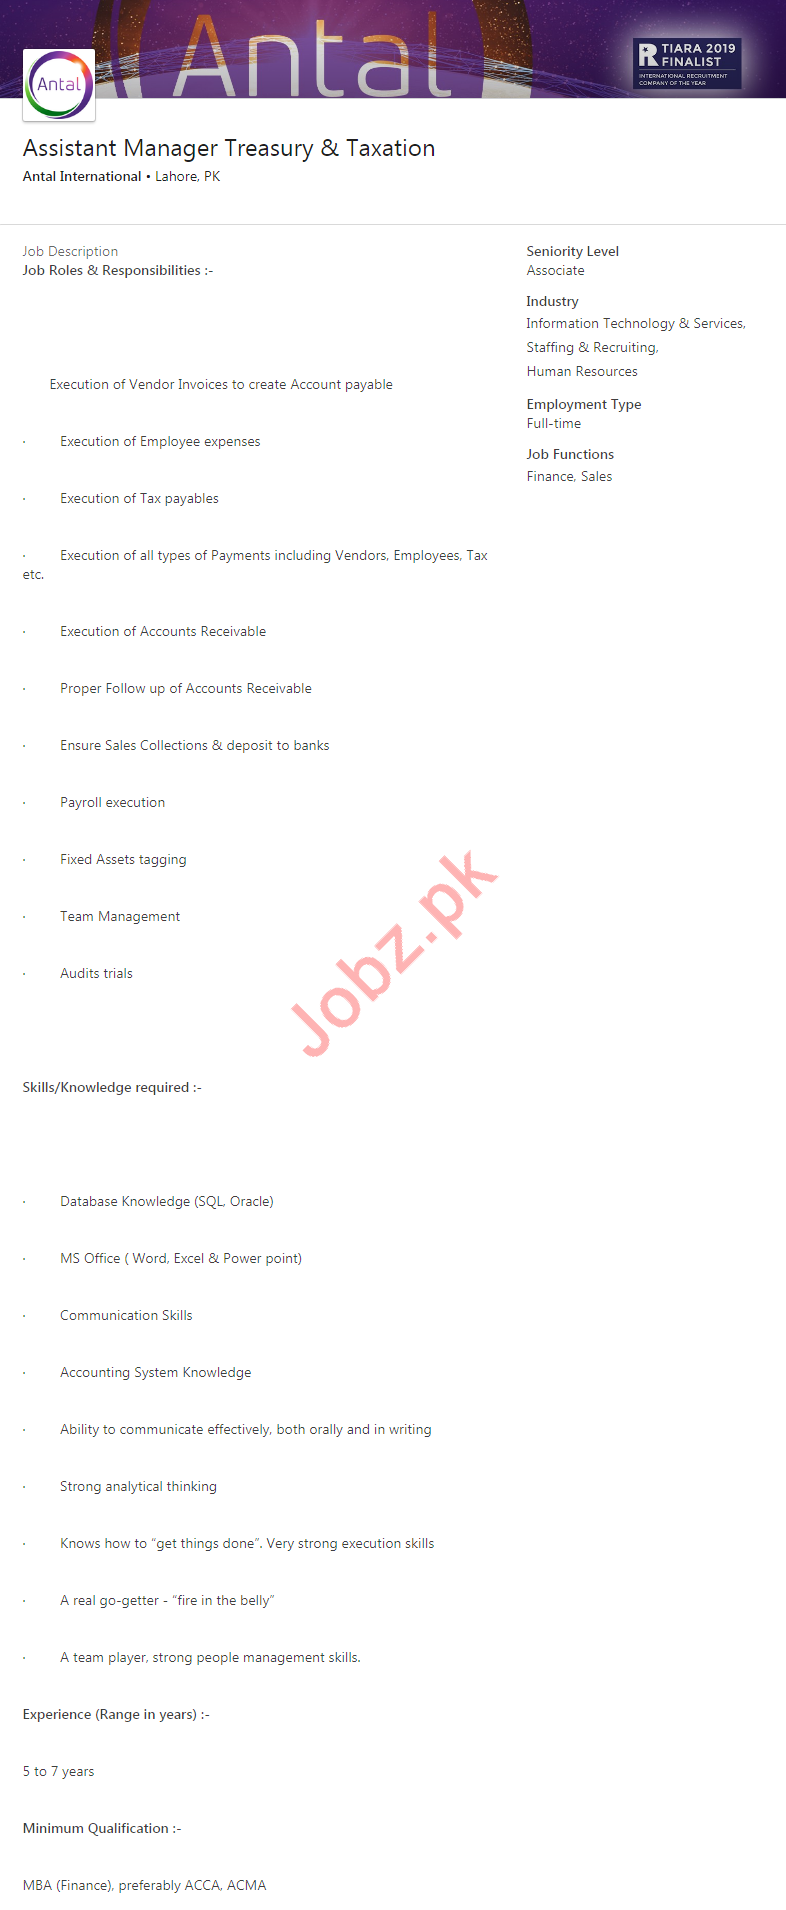 Assistant Manager Jobs in Antal International